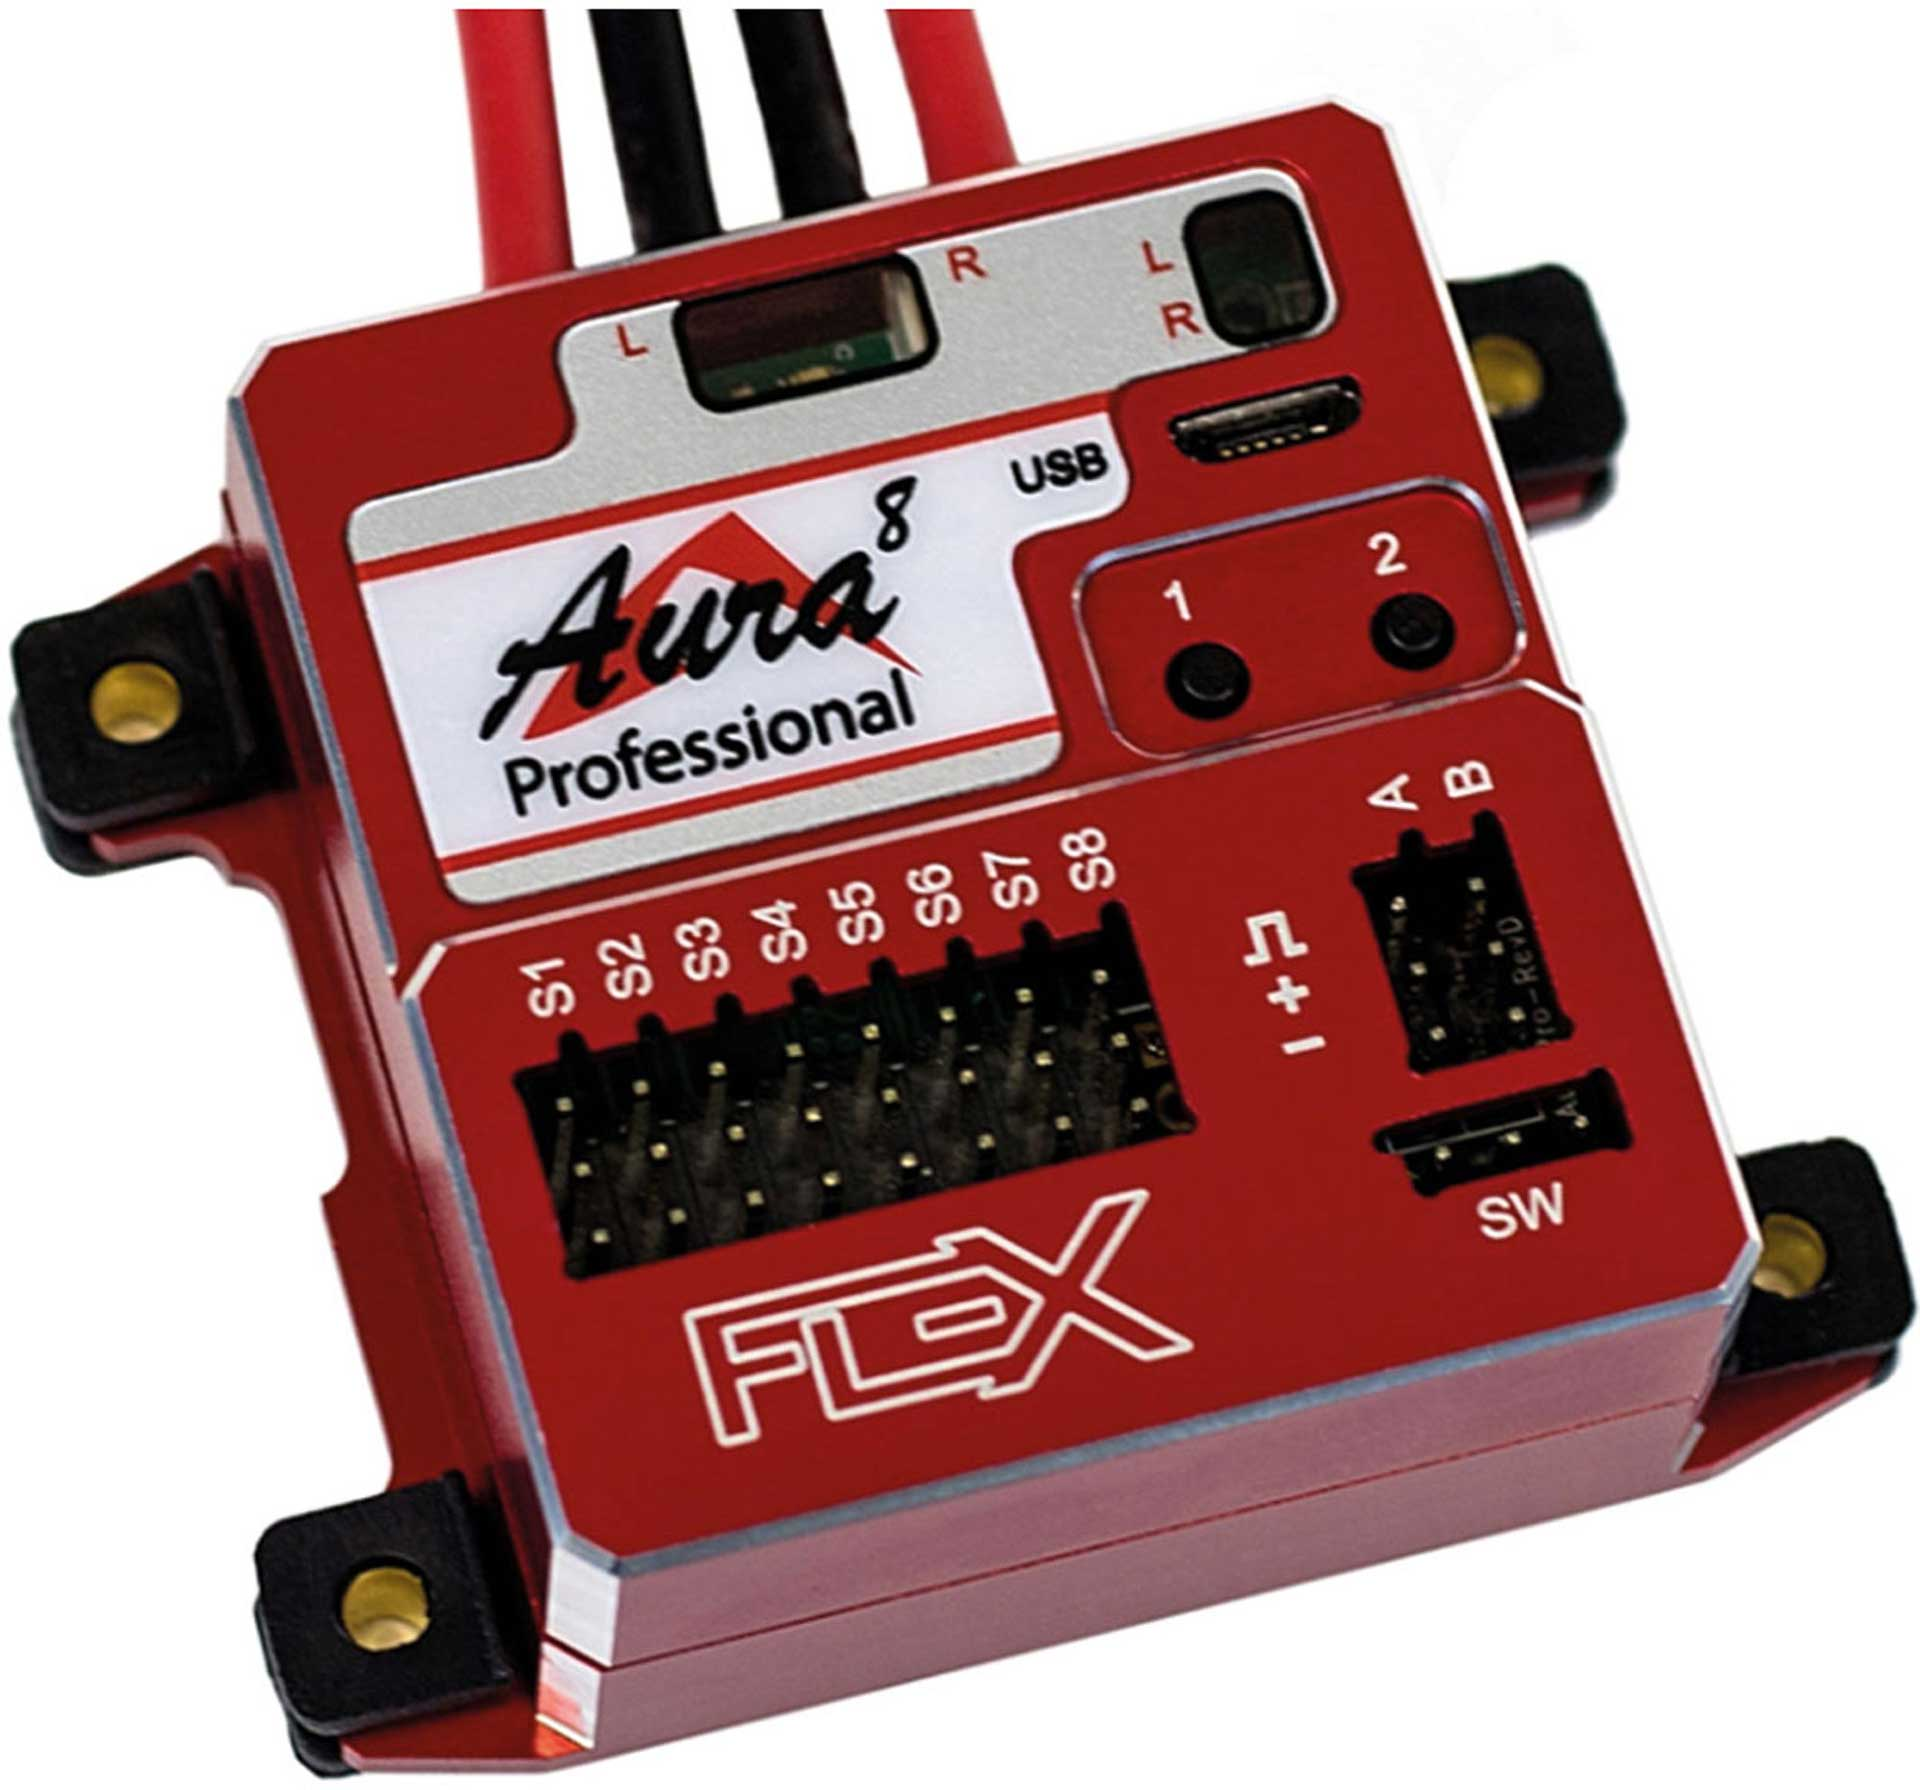 FLEX INNOVATIONS AURA 8 PROFESSIONAL FLIGHT CONTROL